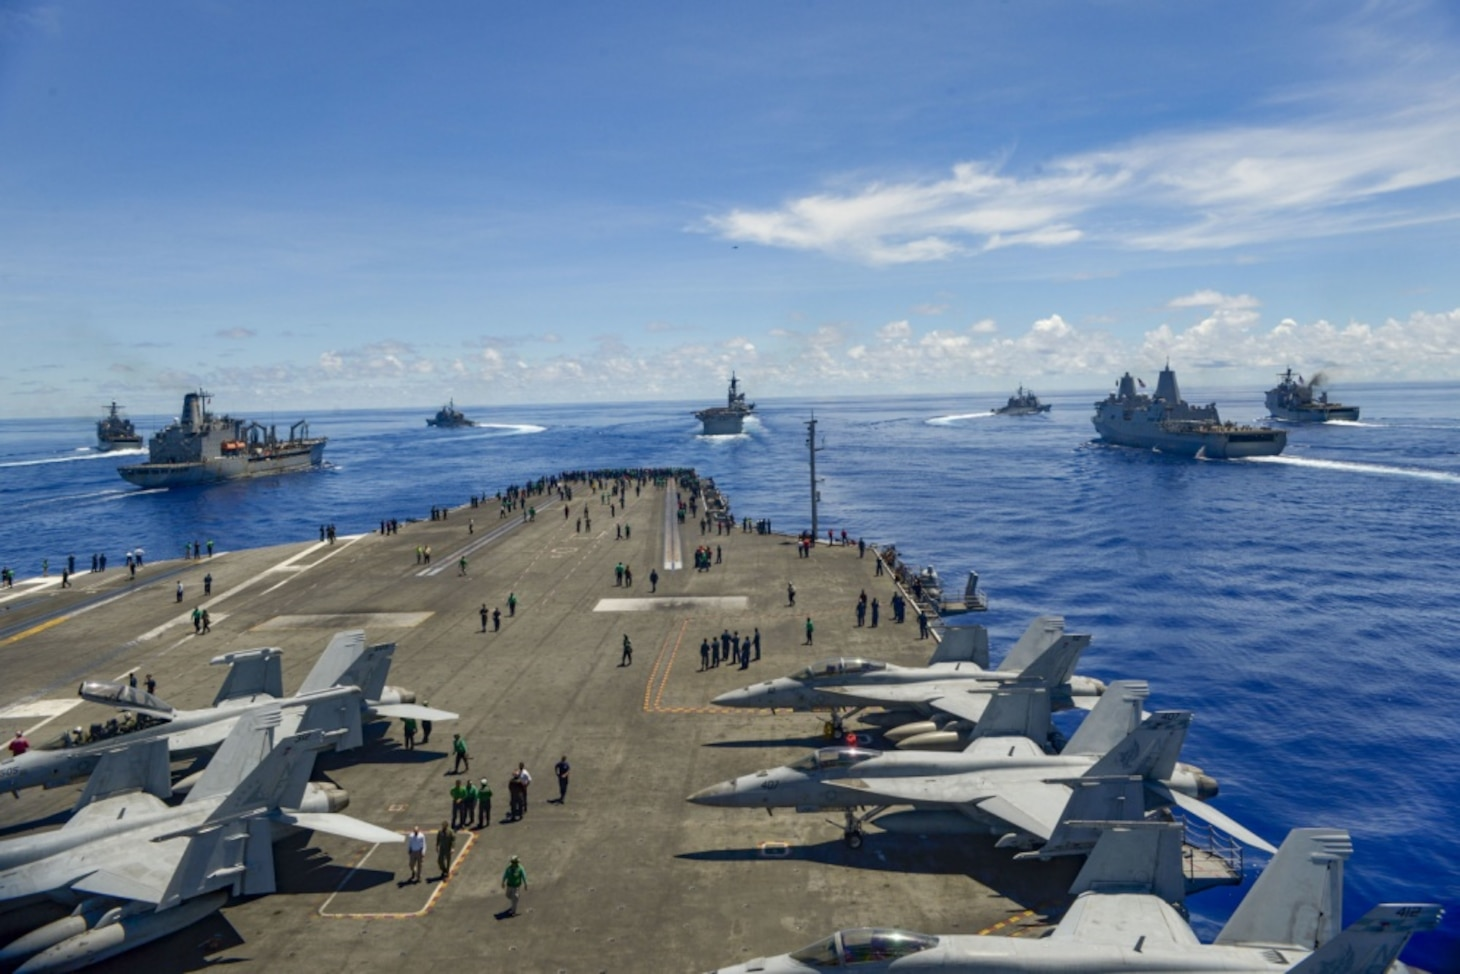 From left, USS Germantown (LSD 42), USNS John Ericsson (T-AO 194), USS Antietam (CG 54), USS Ronald Reagan (CVN 76), USS America (LHA 6), USS Shiloh (CG 67), USS New Orleans (LPD 18), and USS Comstock (LSD 45) break away from formation in support of Valiant Shield 2020. Valiant Shield is a U.S. only, biennial field training exercise (FTX) with a focus on integration of joint training in a blue-water environment among U.S. forces. This training enables real-world proficiency in sustaining joint forces through detecting, locating, tracking and engaging units at sea, in the air, on land and in cyberspace in response to a range of mission areas.